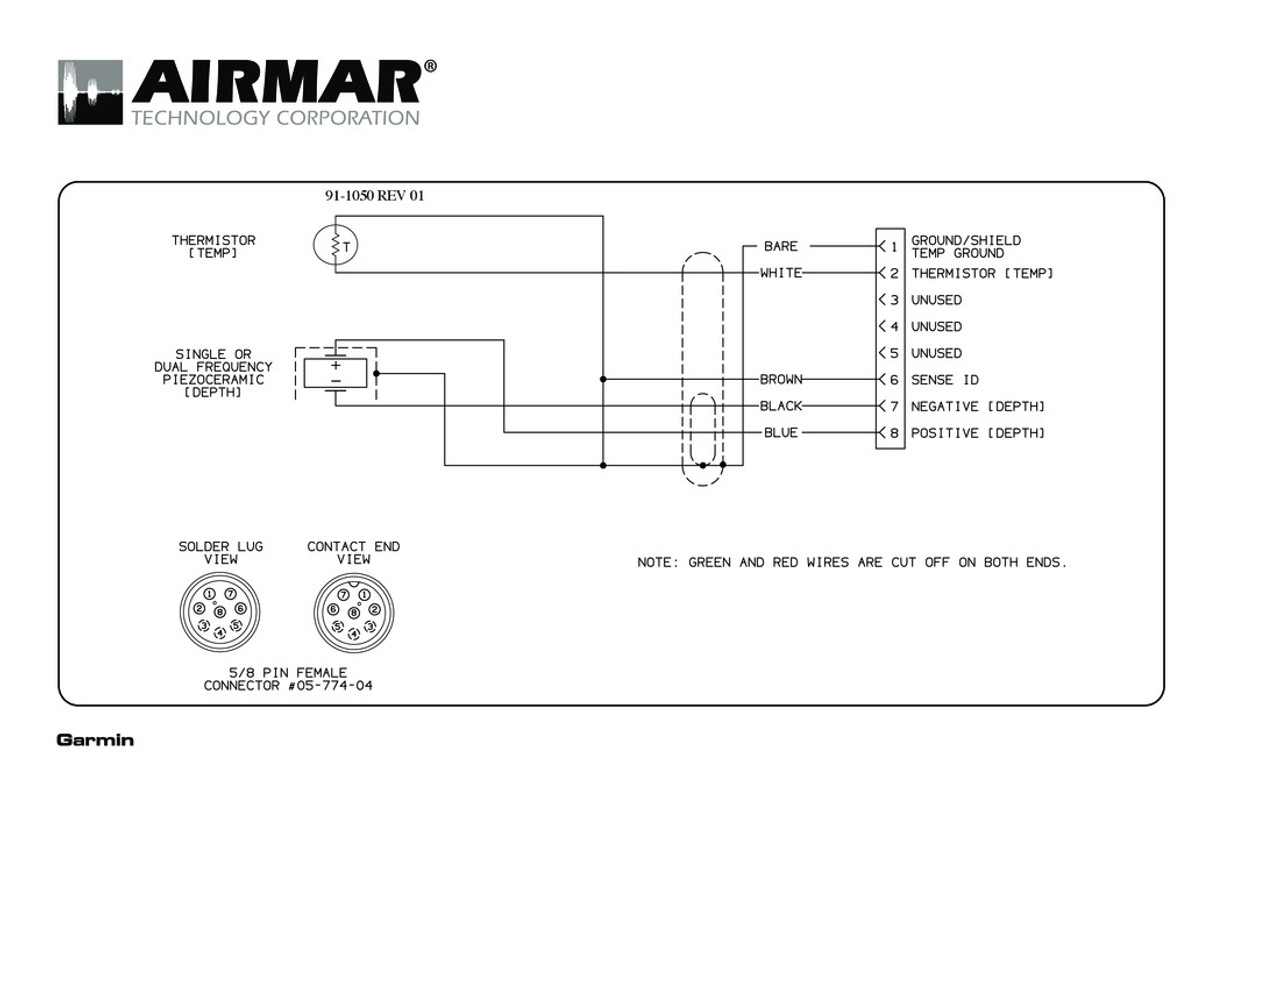 airmar wiring diagram garmin p319 8 pin d t blue bottle marine rh bluebottlemarine com garmin 8 pin transducer wiring diagram Garmin 3210 Wiring Installation